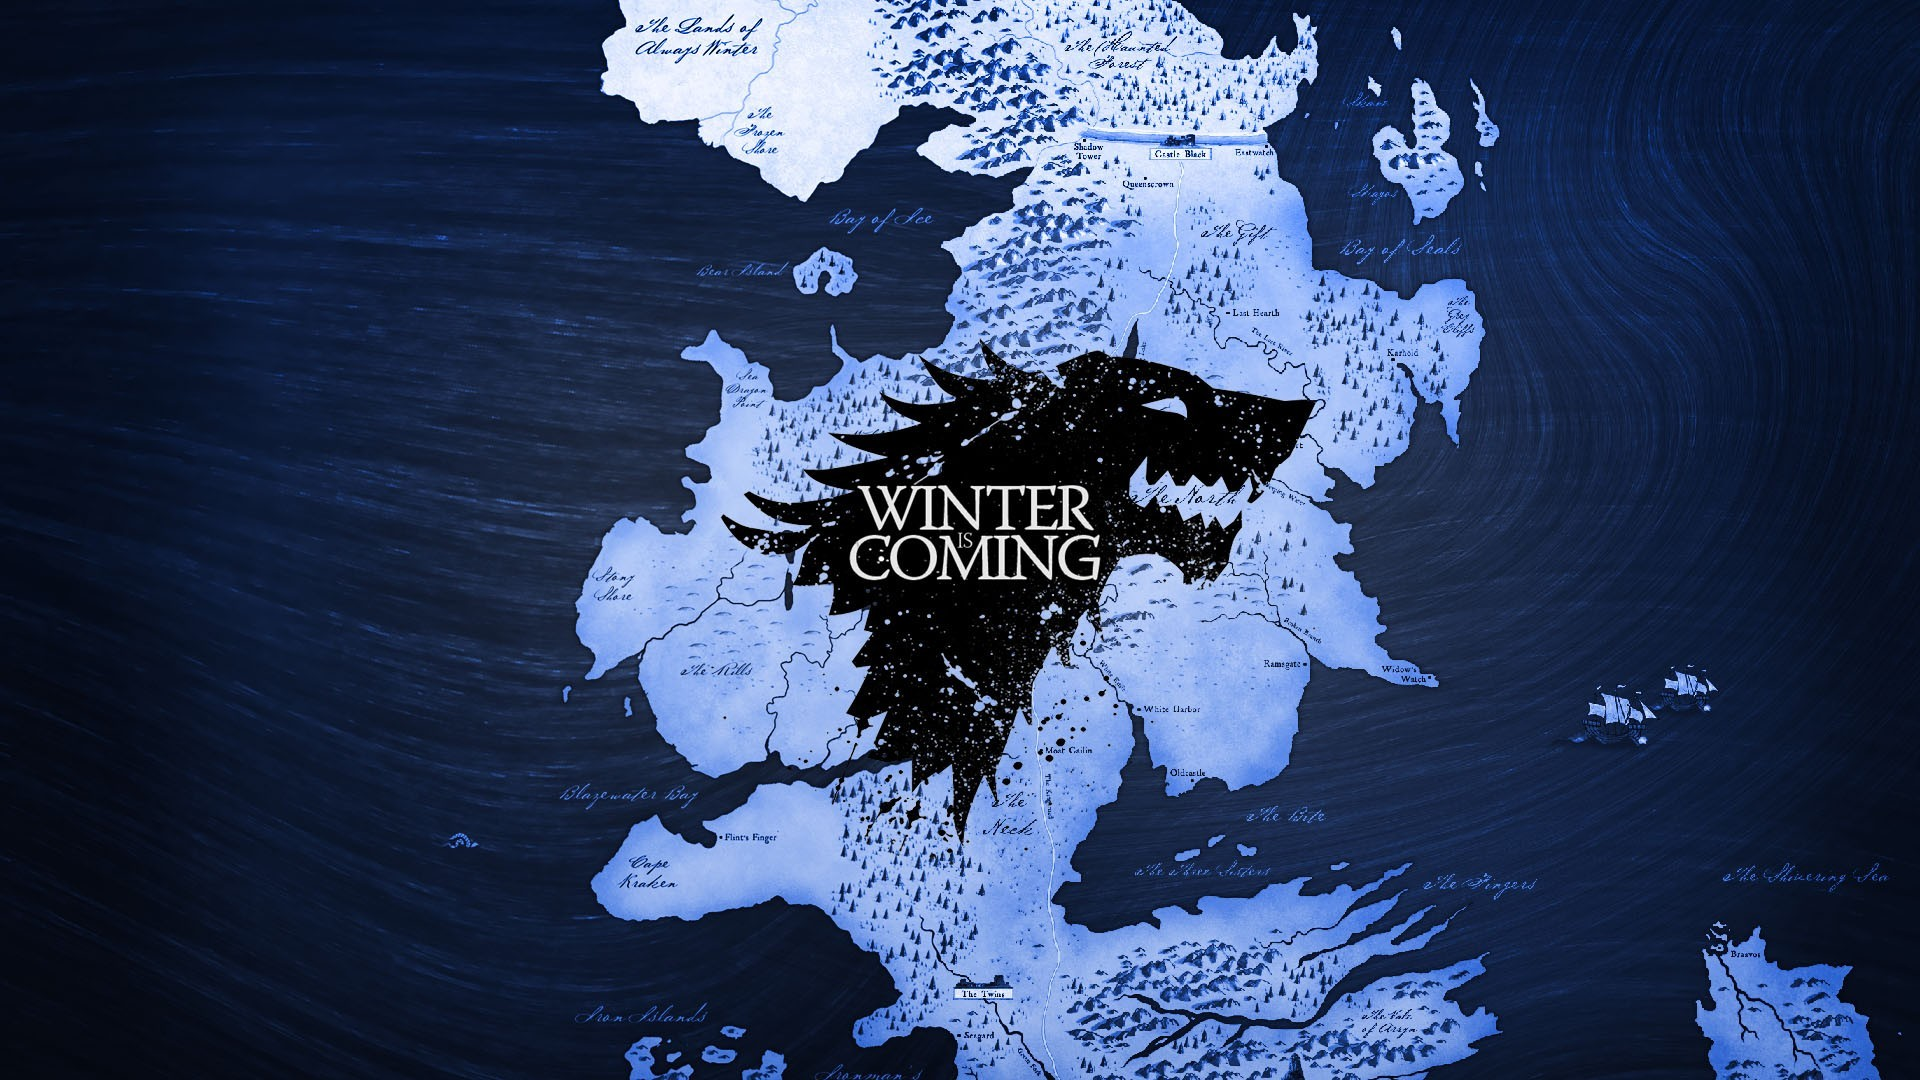 Game Of Thrones Wallpapers - Game Of Throne Mapa - HD Wallpaper